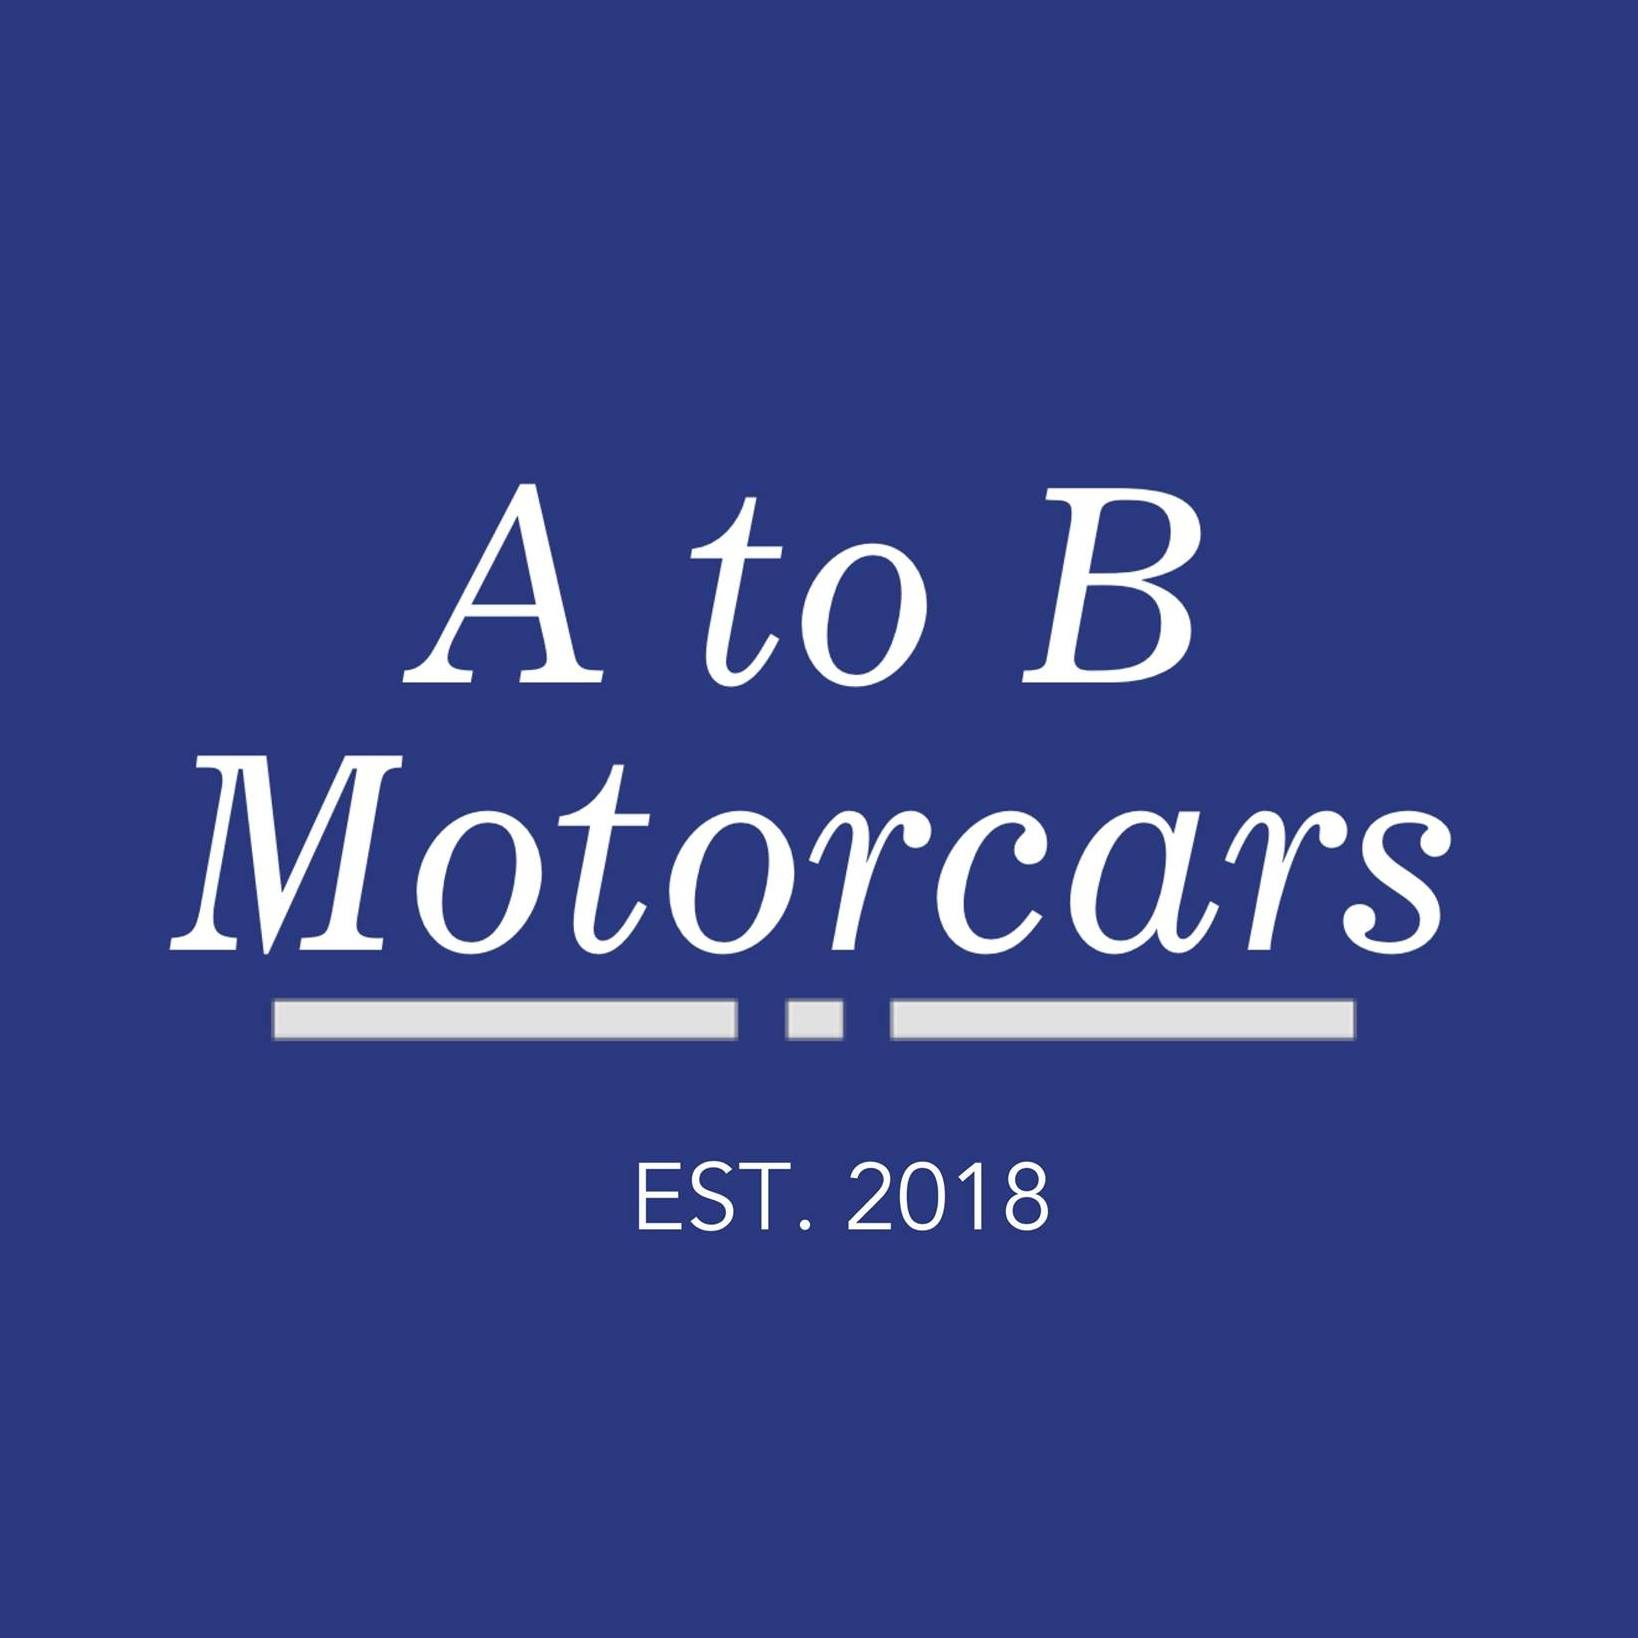 A to B Motorcars Logo